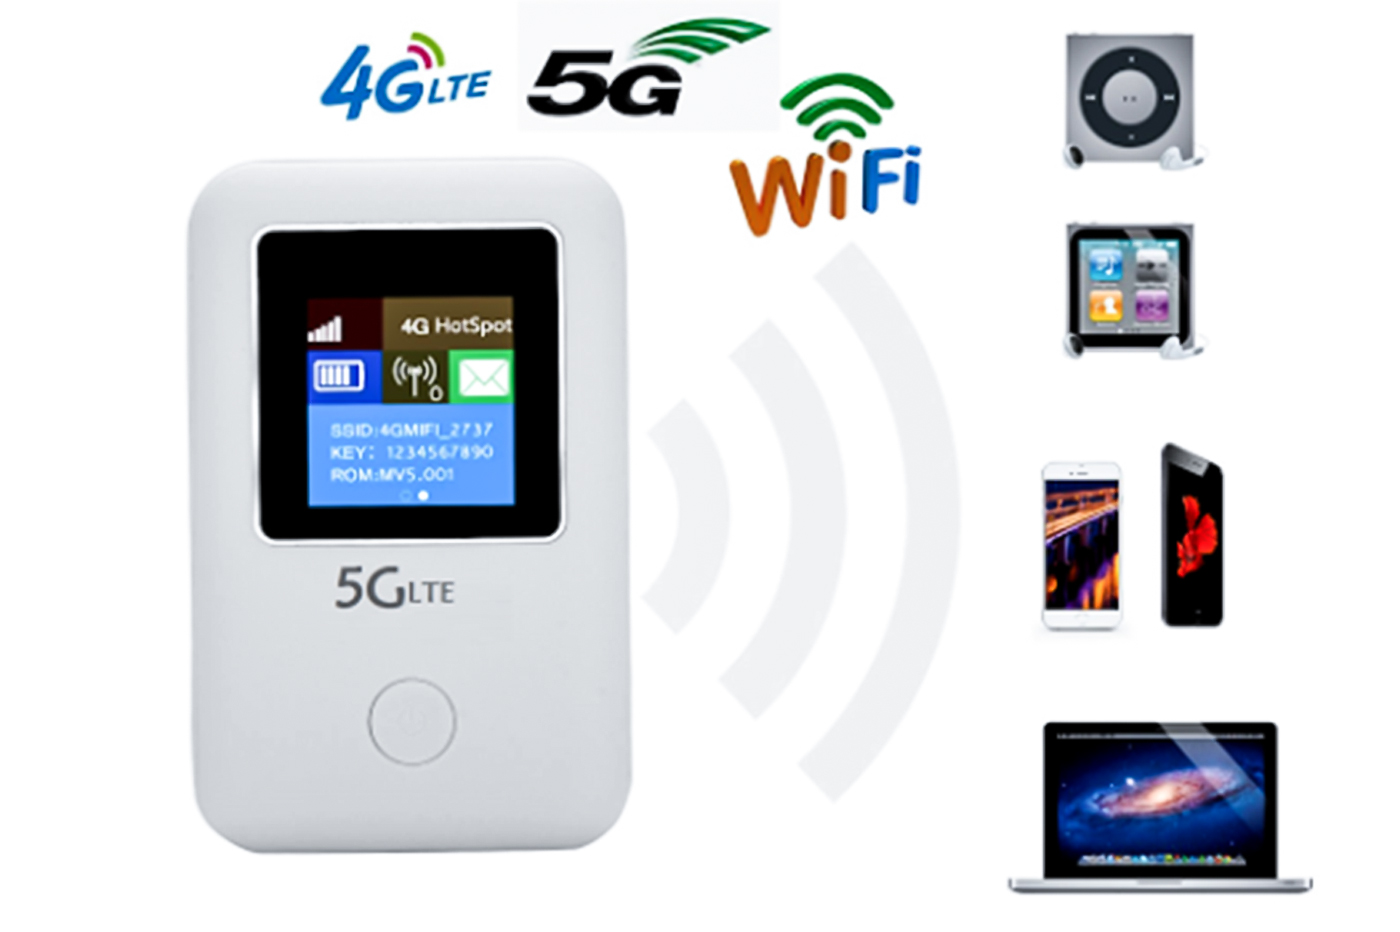 Mini router wifi modem portatile 5G 4GLTE hotspot wireless ricaricabile Q-A214